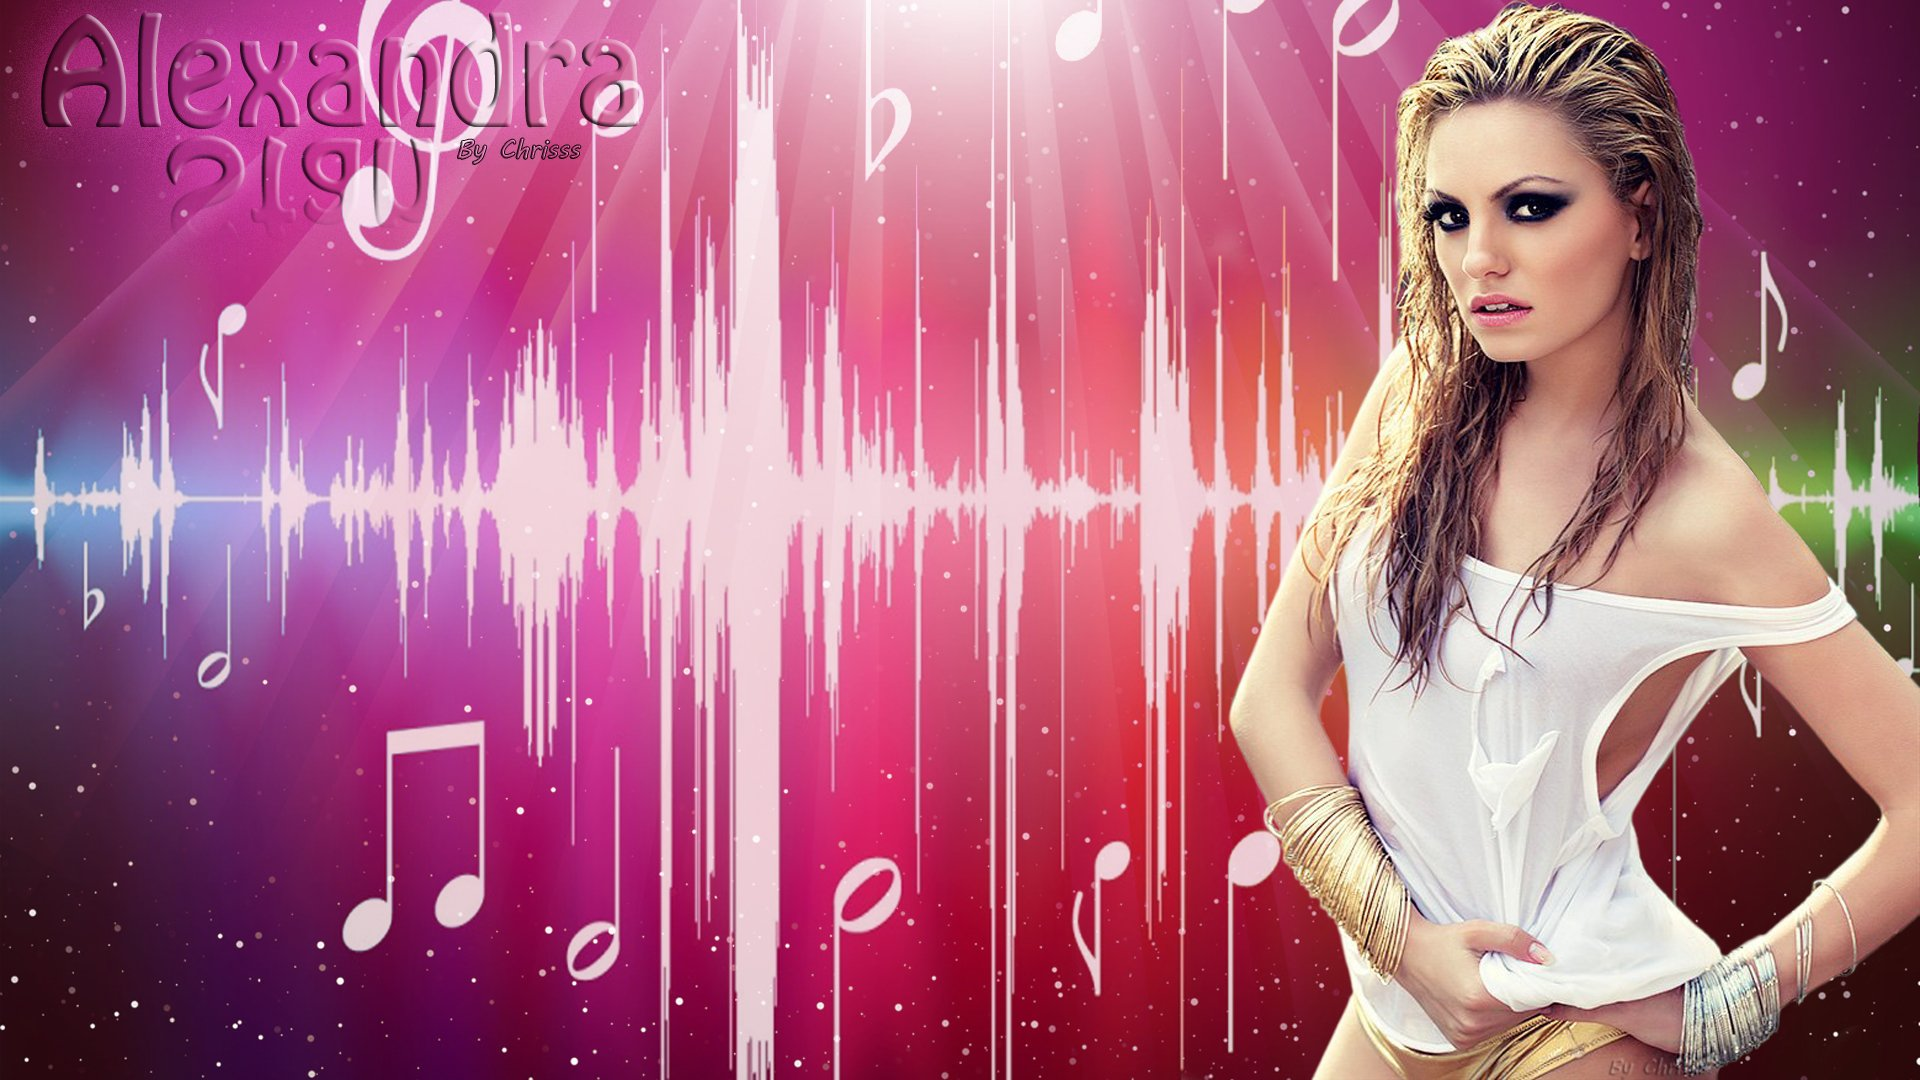 Wallpapers ID:300242